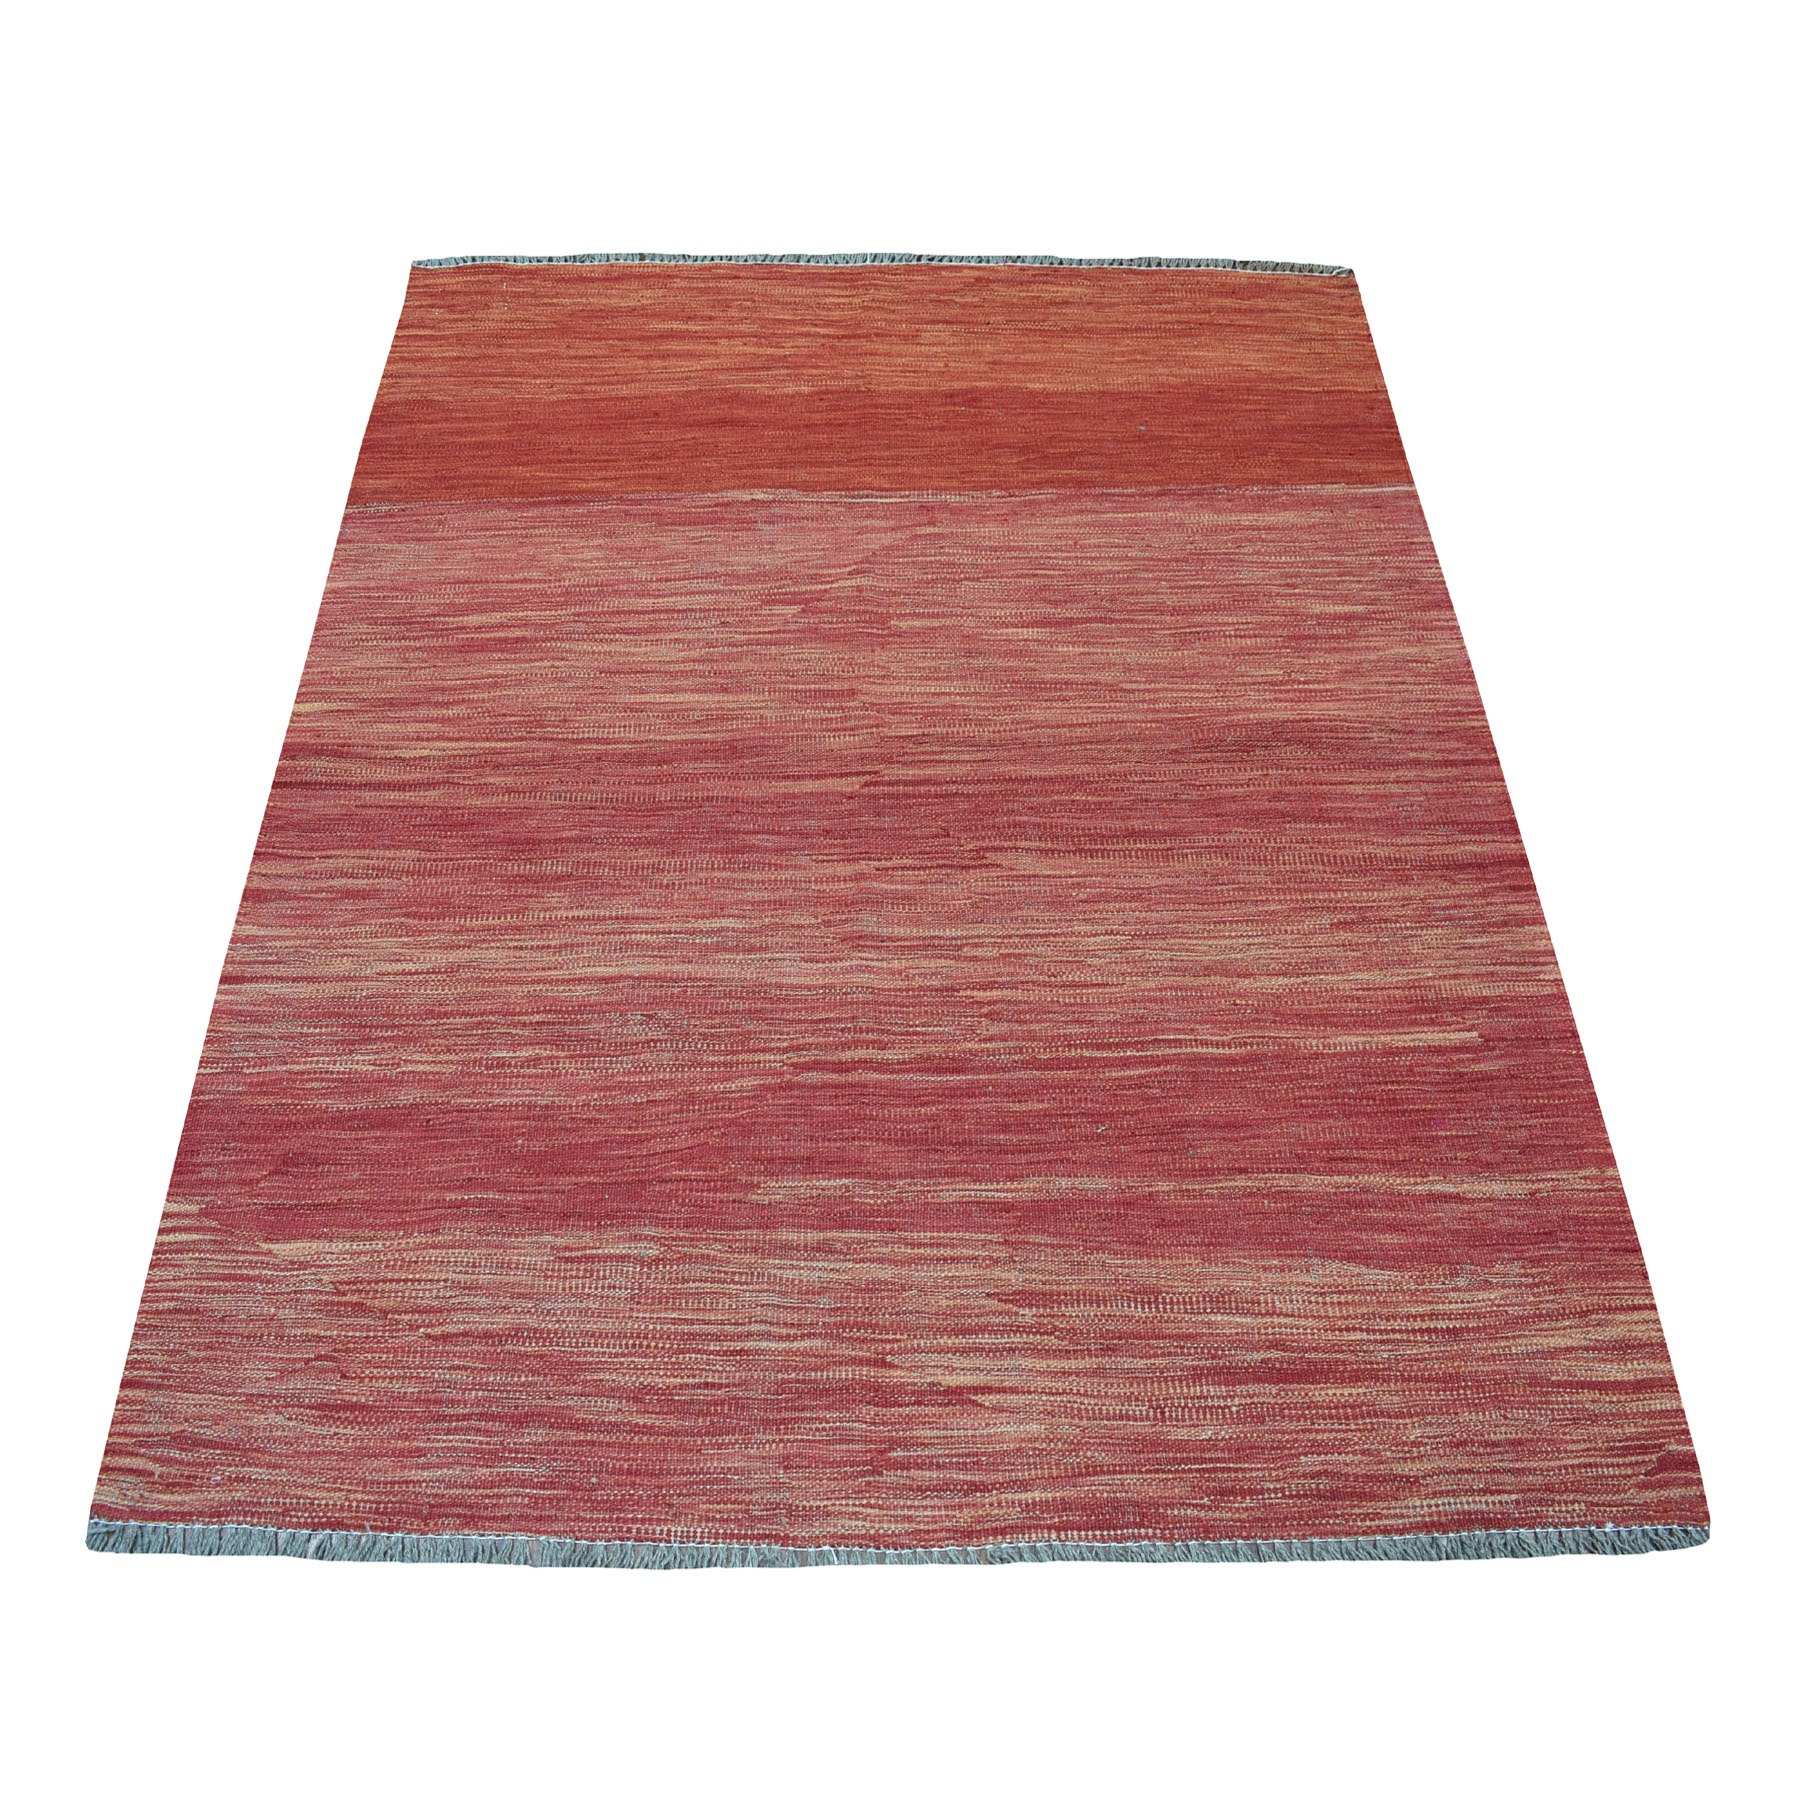 Fine Kilim Collection Hand Woven Red Rug No: 01108456